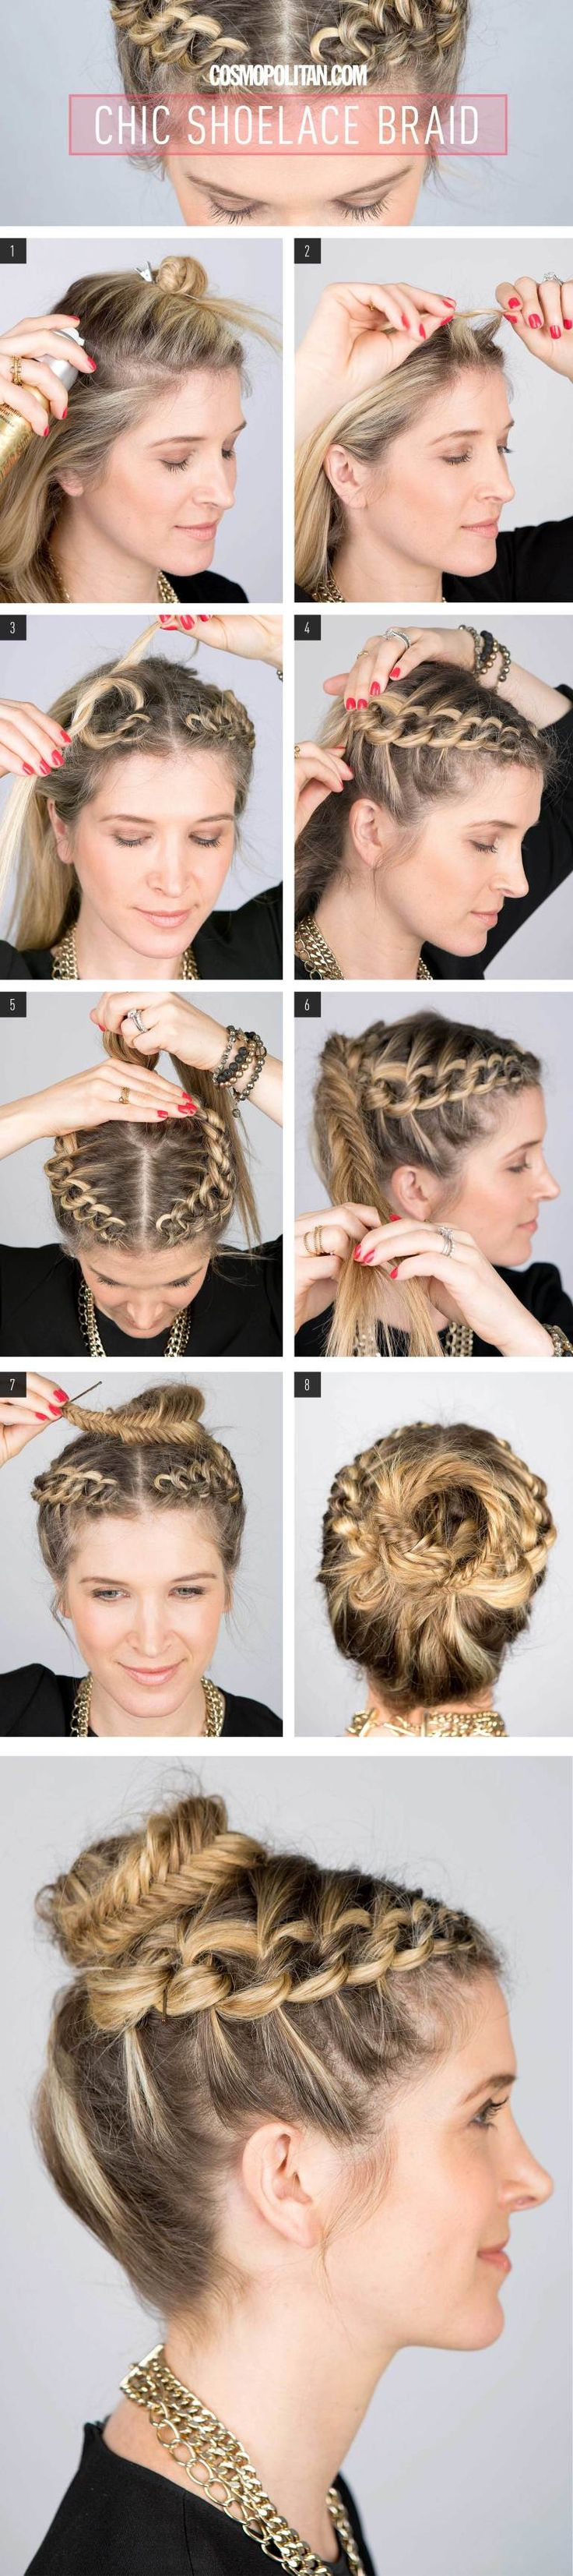 This I so cool! But to think she's just putting alot of knots in her hair and I looks this good is just crazy